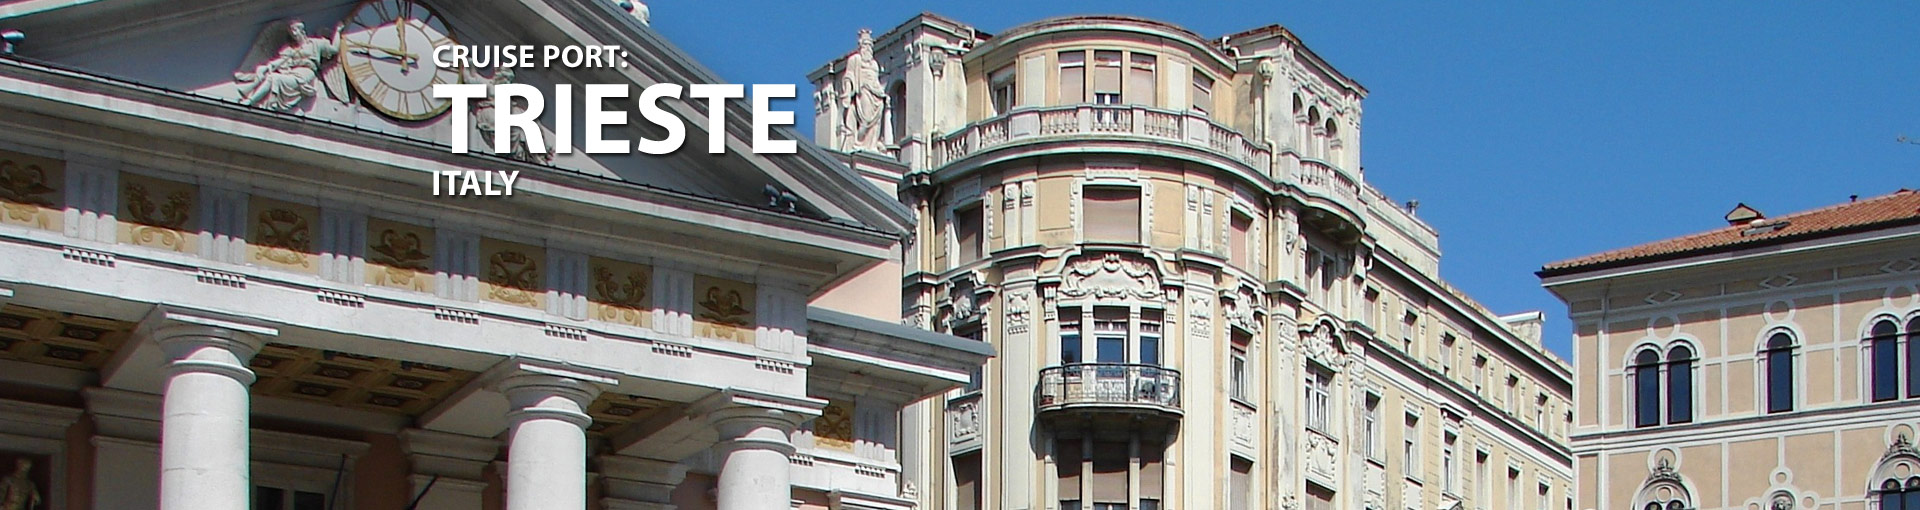 Cruises from Trieste, Italy